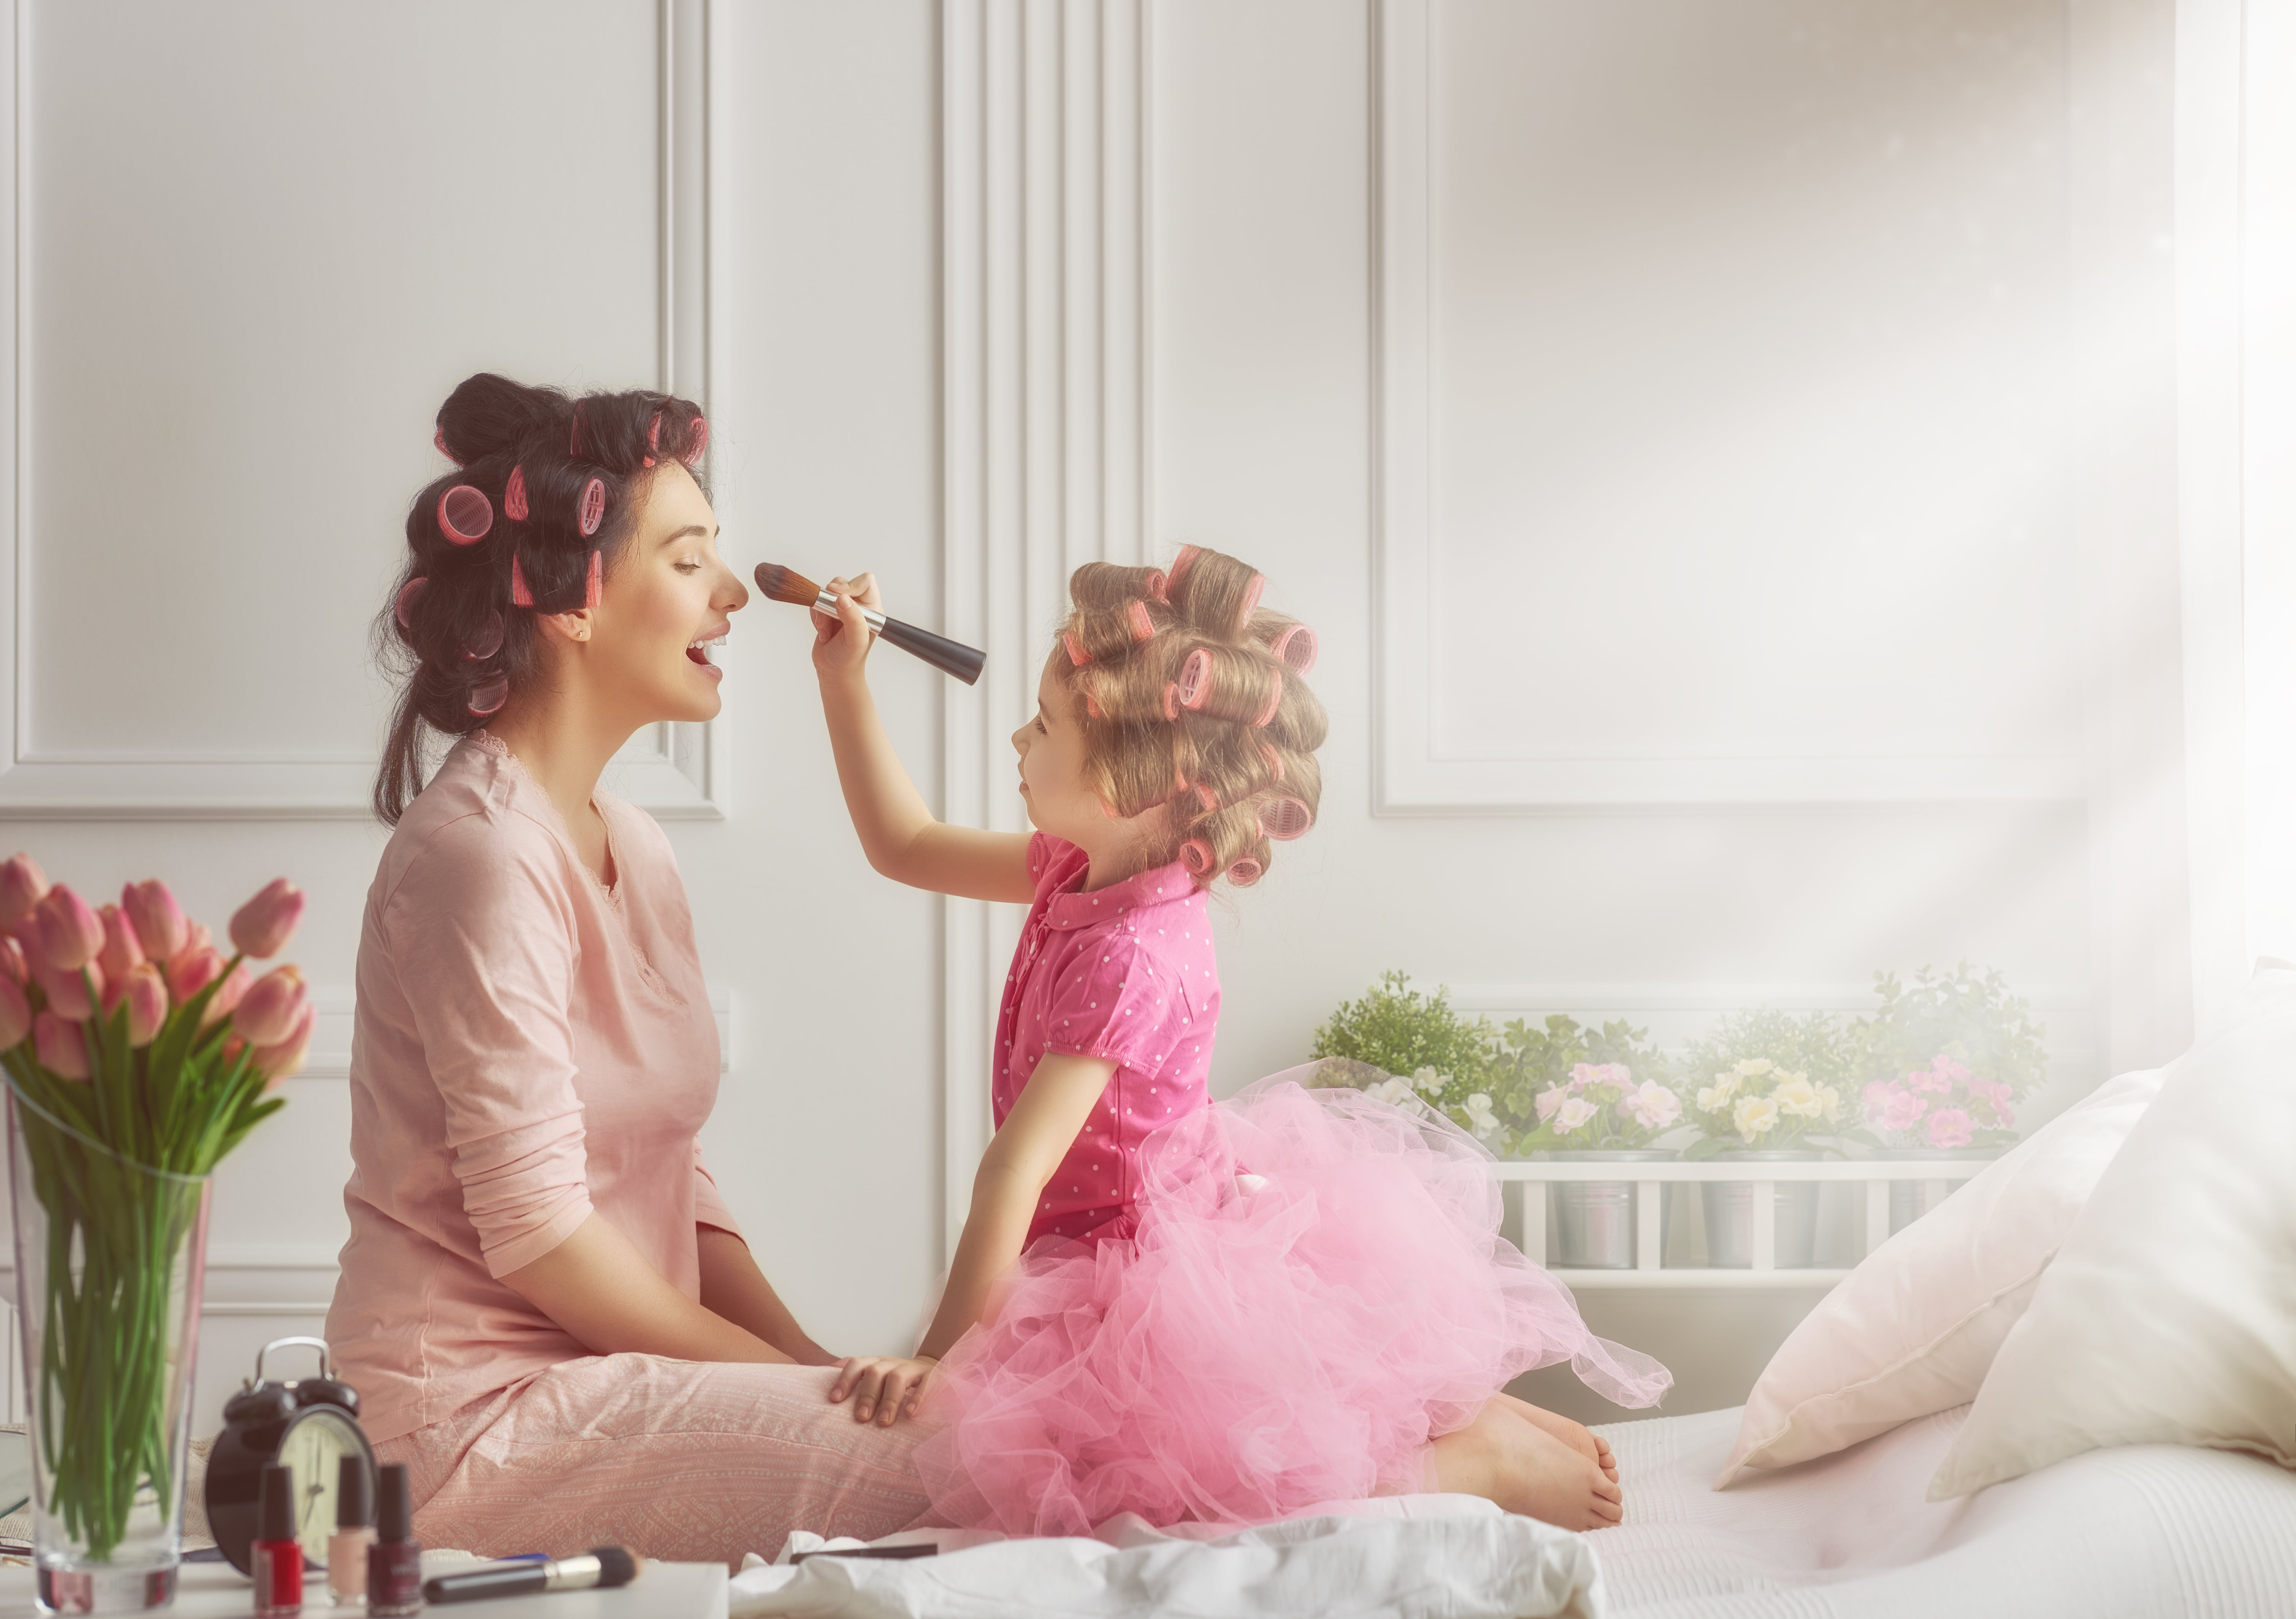 7 Essential Lessons You Should Teach Your Daughter